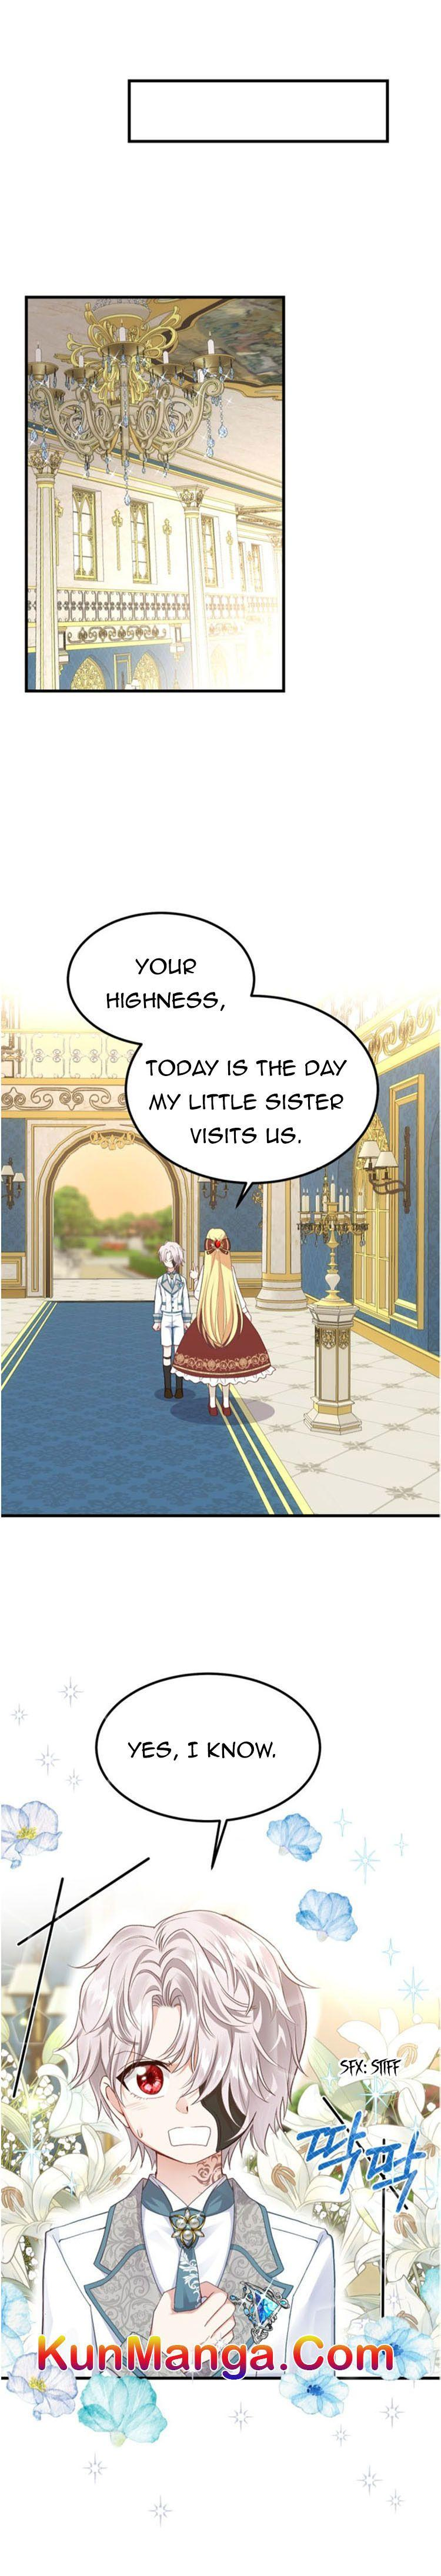 I Became The Wife Of The Monstrous Crown Prince Chapter 25.5 page 1 - Mangakakalots.com